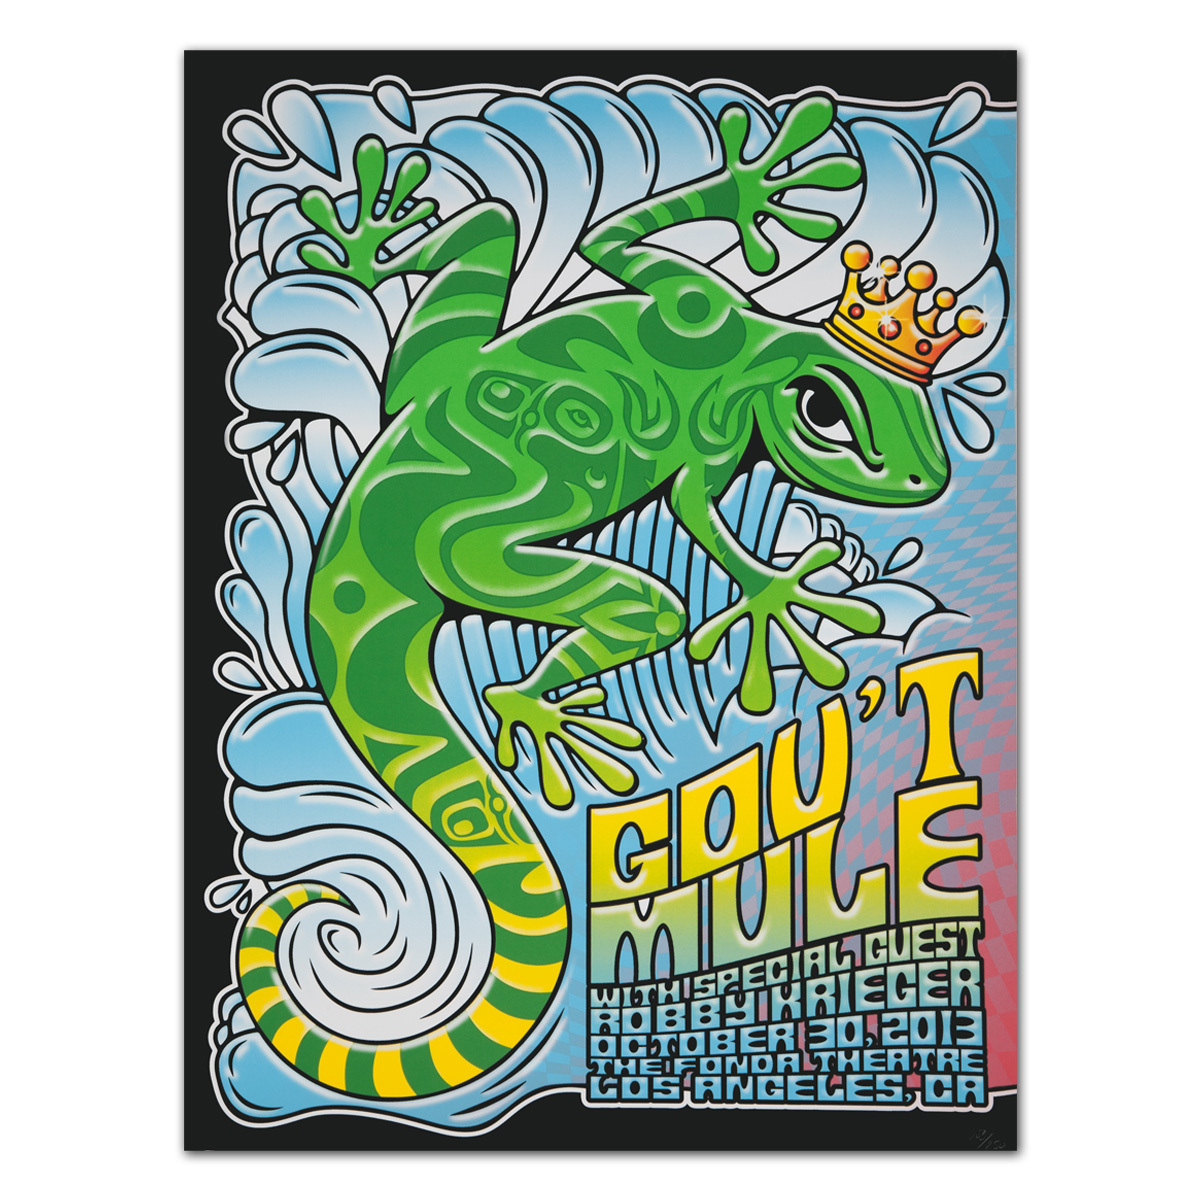 Gov't Mule 2013 Los Angeles, CA Fonda Theatre Event Poster